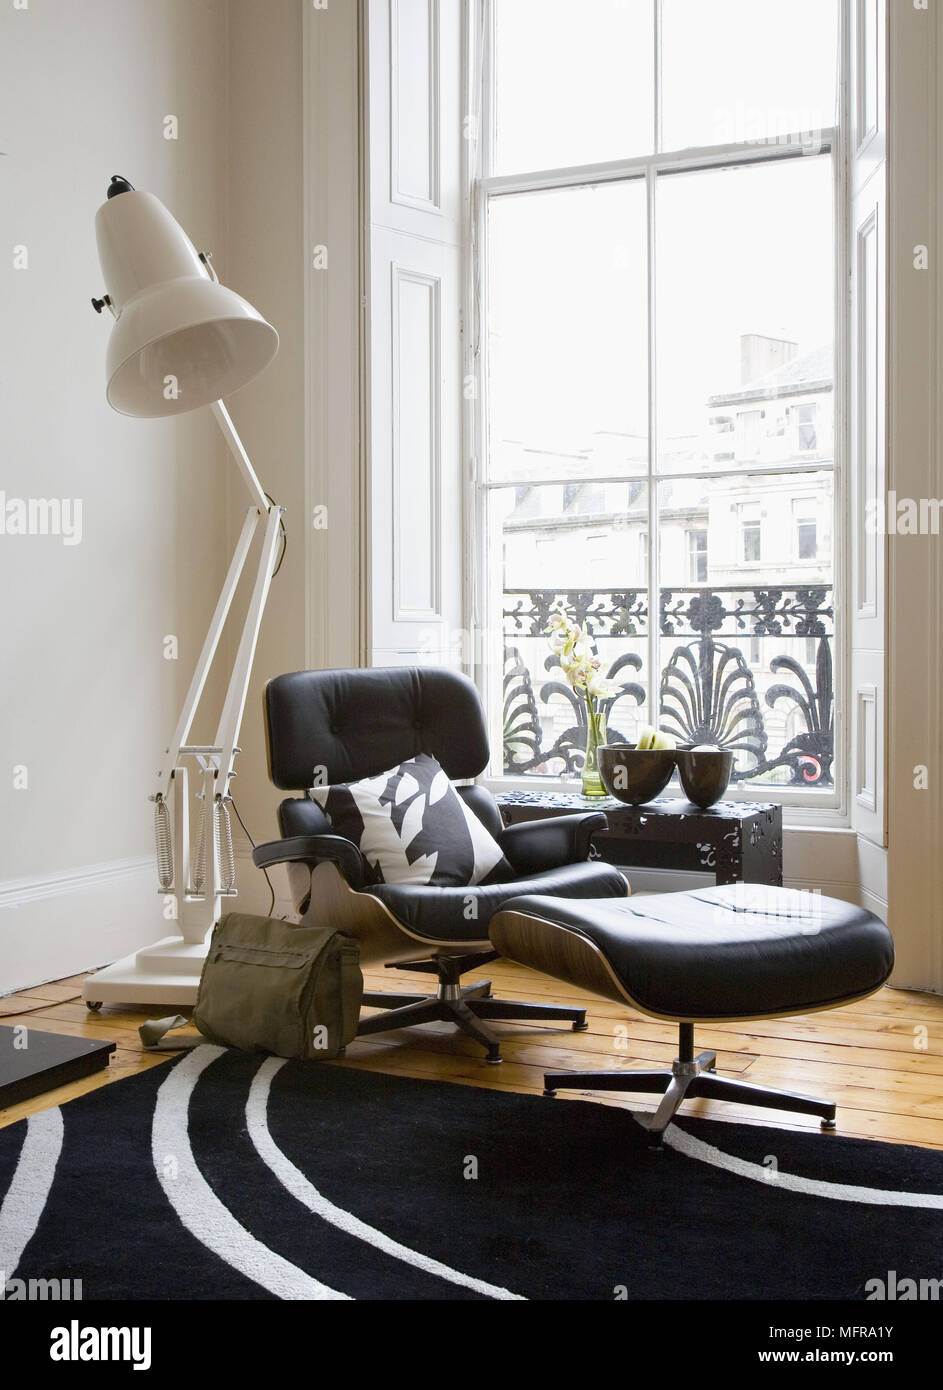 Oversize Anglepoise Floor Lamp Behind Eames Lounge Chair And Ottoman In  Front Of Window